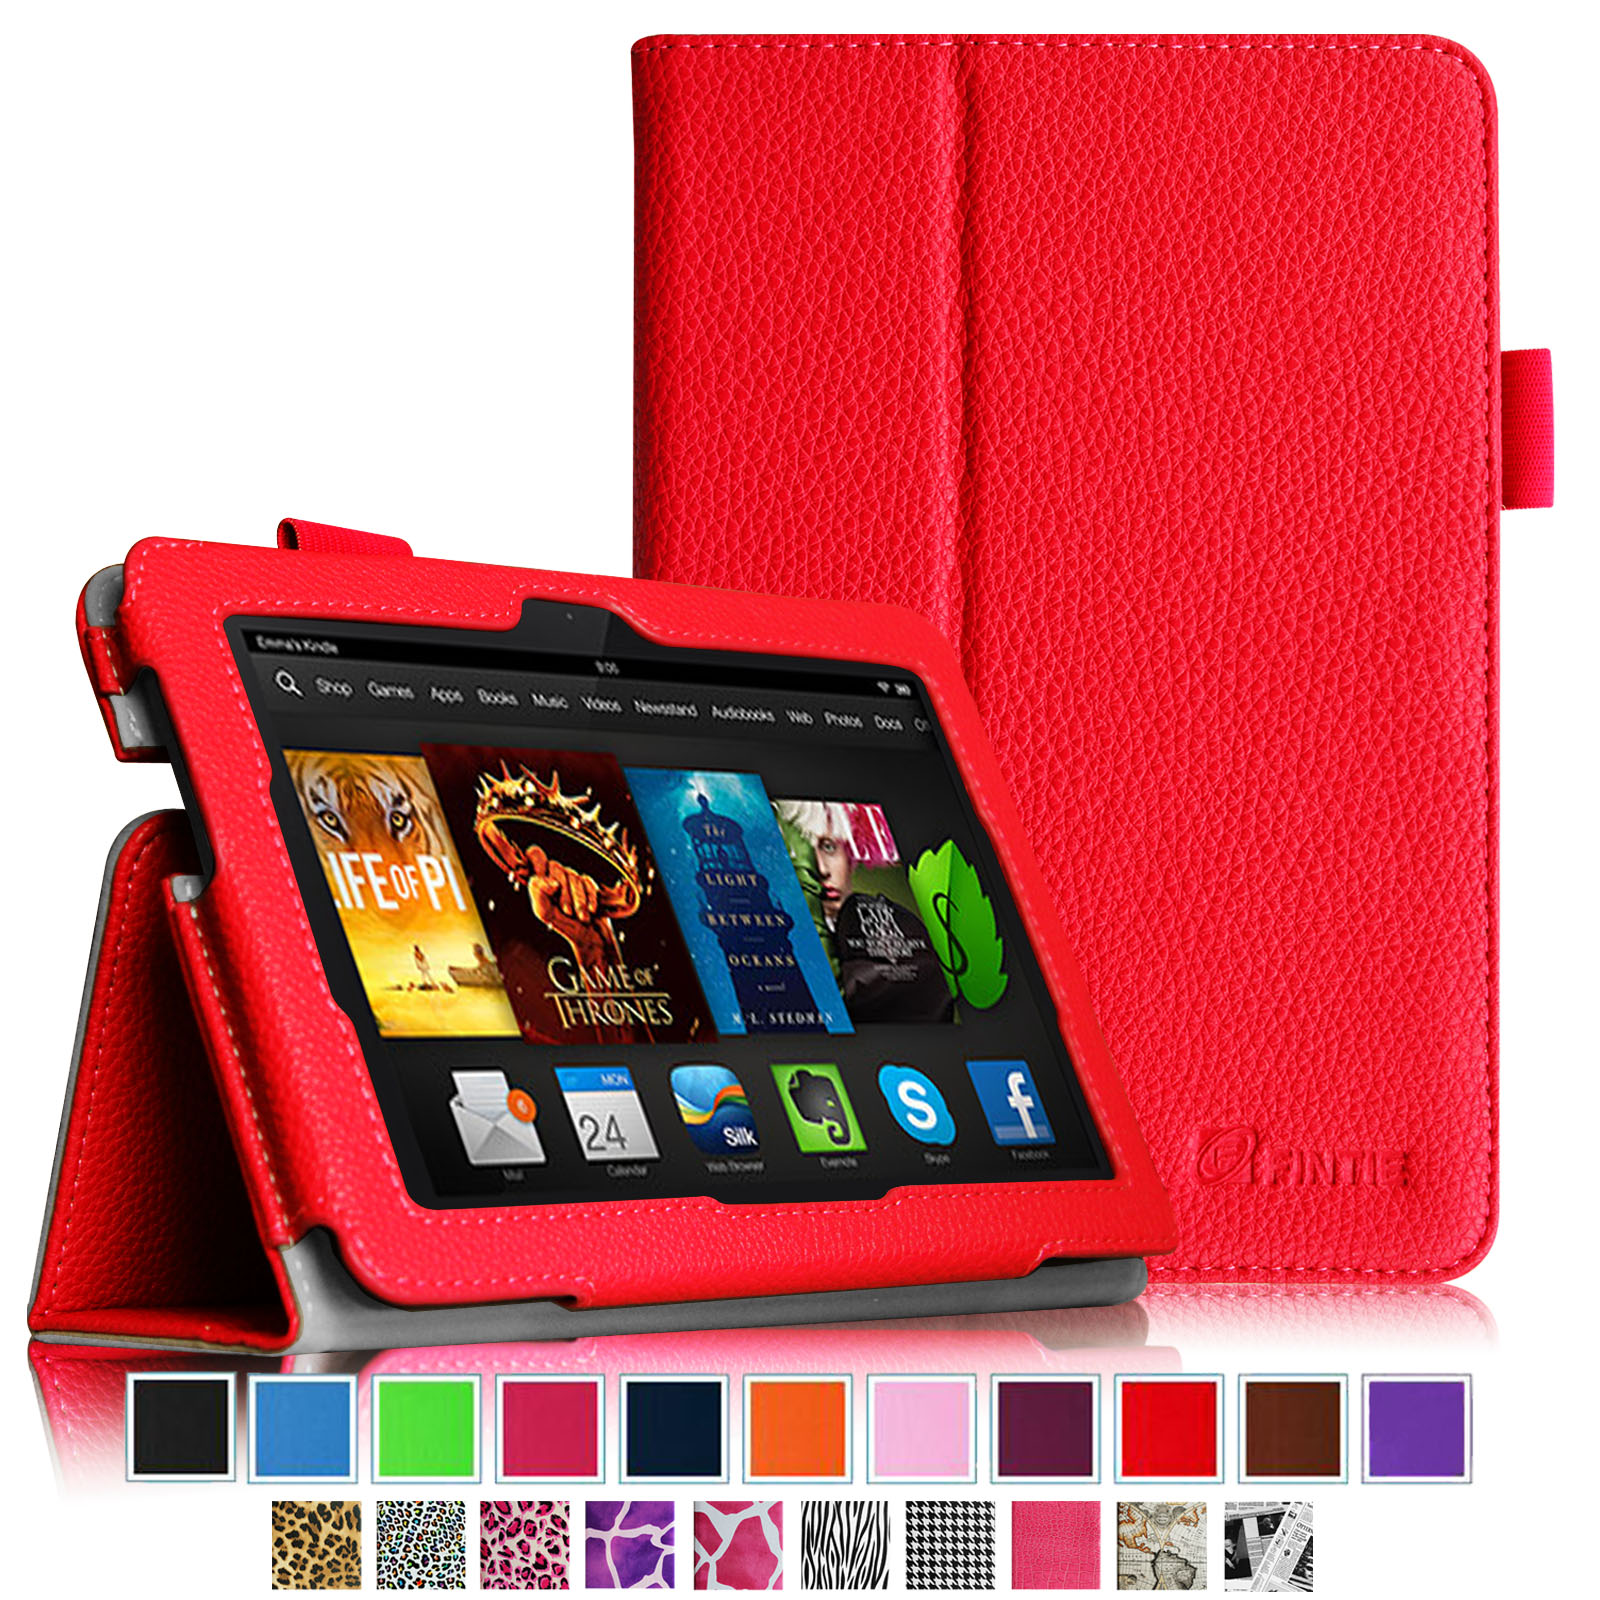 "Fintie Kindle Fire HDX 7 Folio Case Cover - Auto Sleep/Wake (will only fit Kindle Fire HDX 7"" 2013), Red"